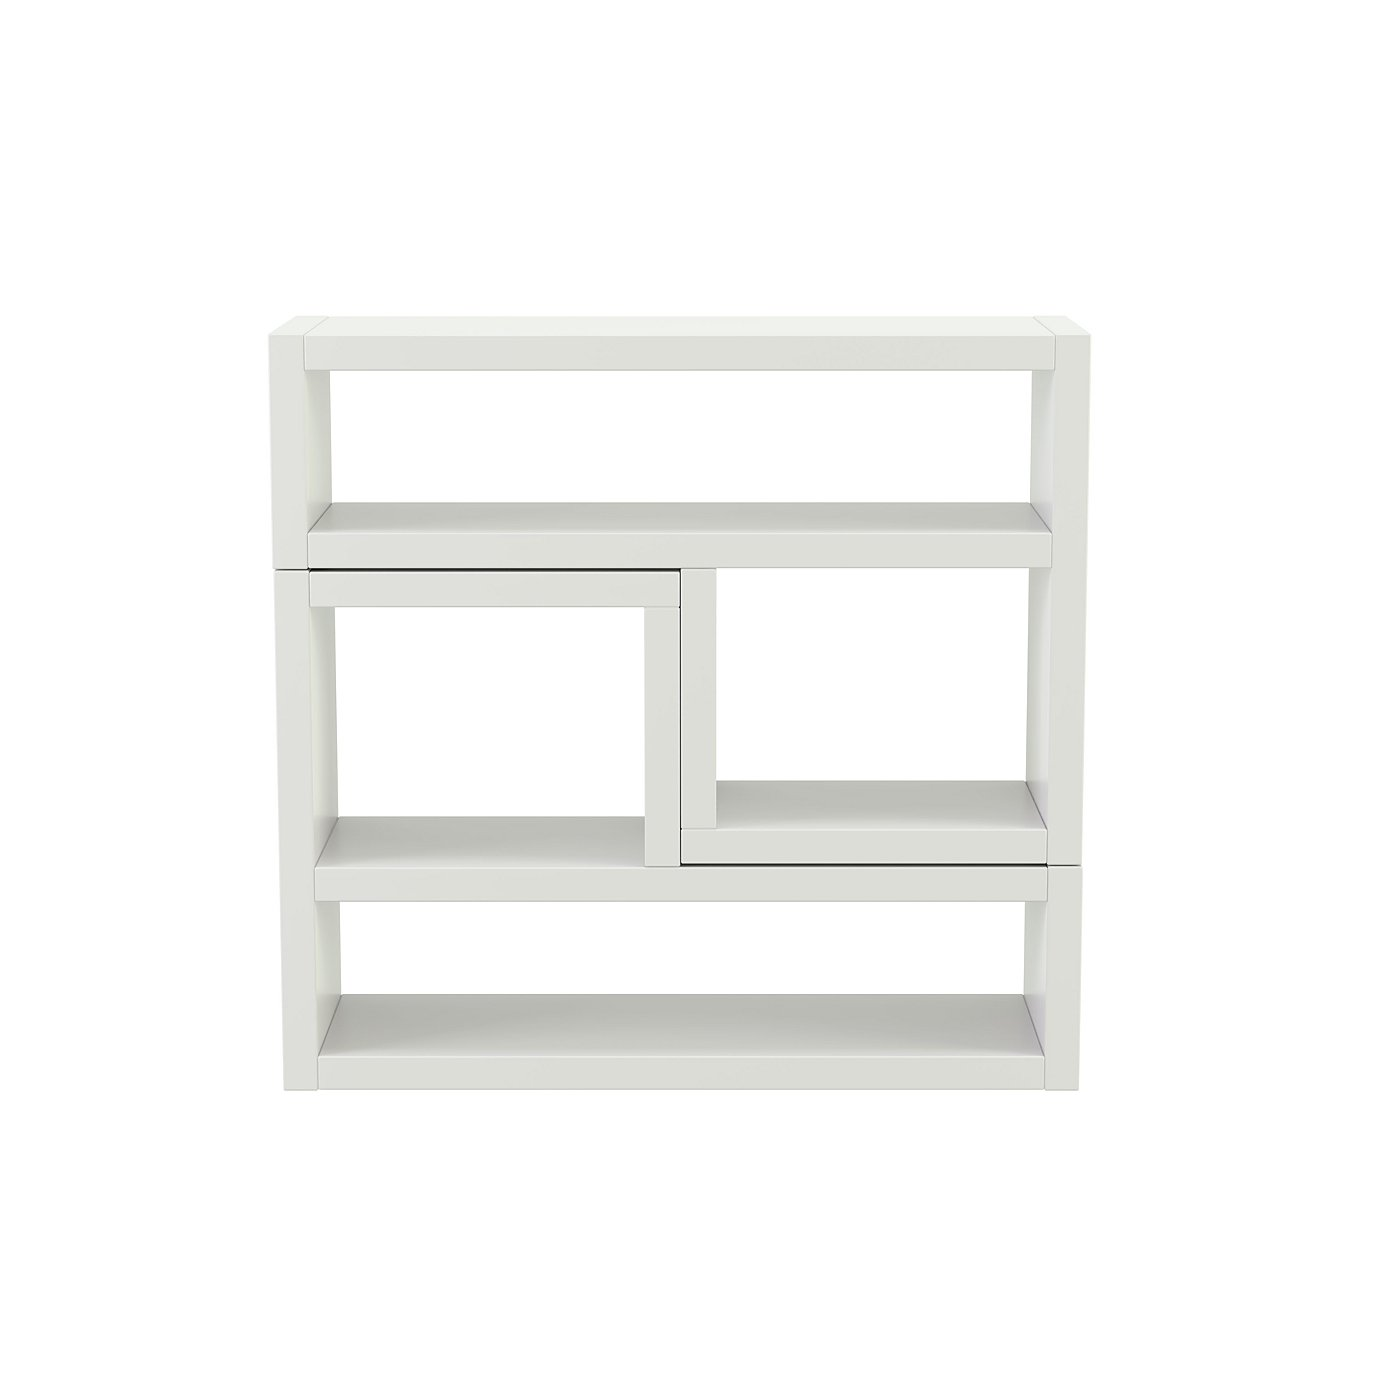 The Range Living Room Furniture George Home Leighton Living Room Furniture Range White Living